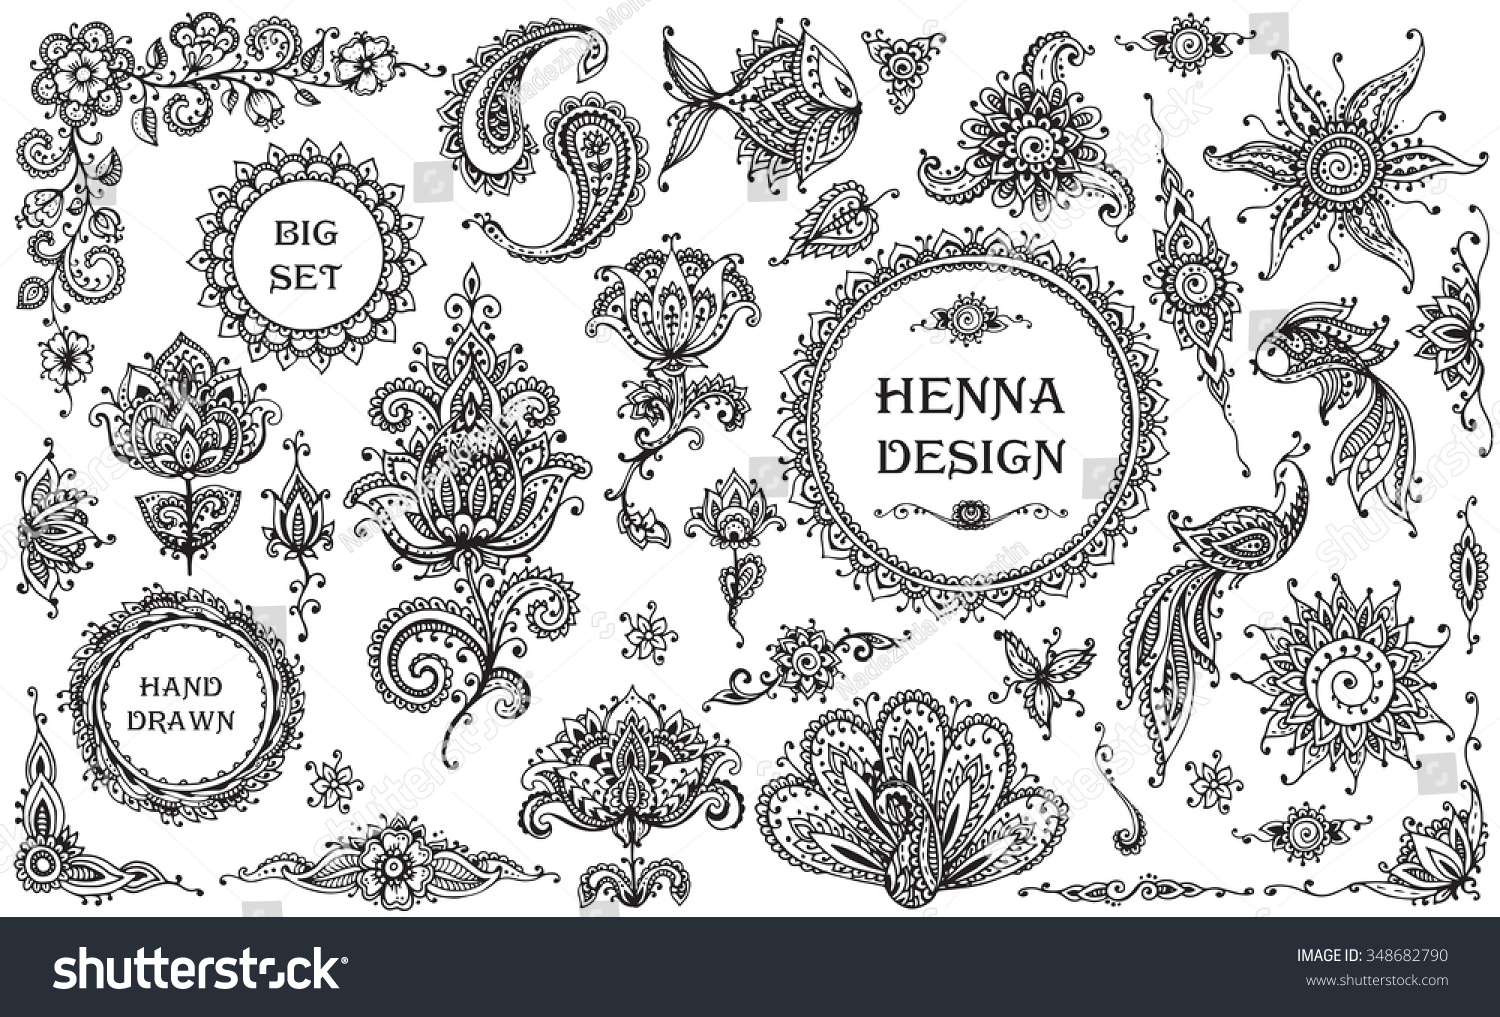 Animal ornaments - Big Vector Set Of Henna Floral And Animal Elements And Frames Based On Traditional Asian Ornaments